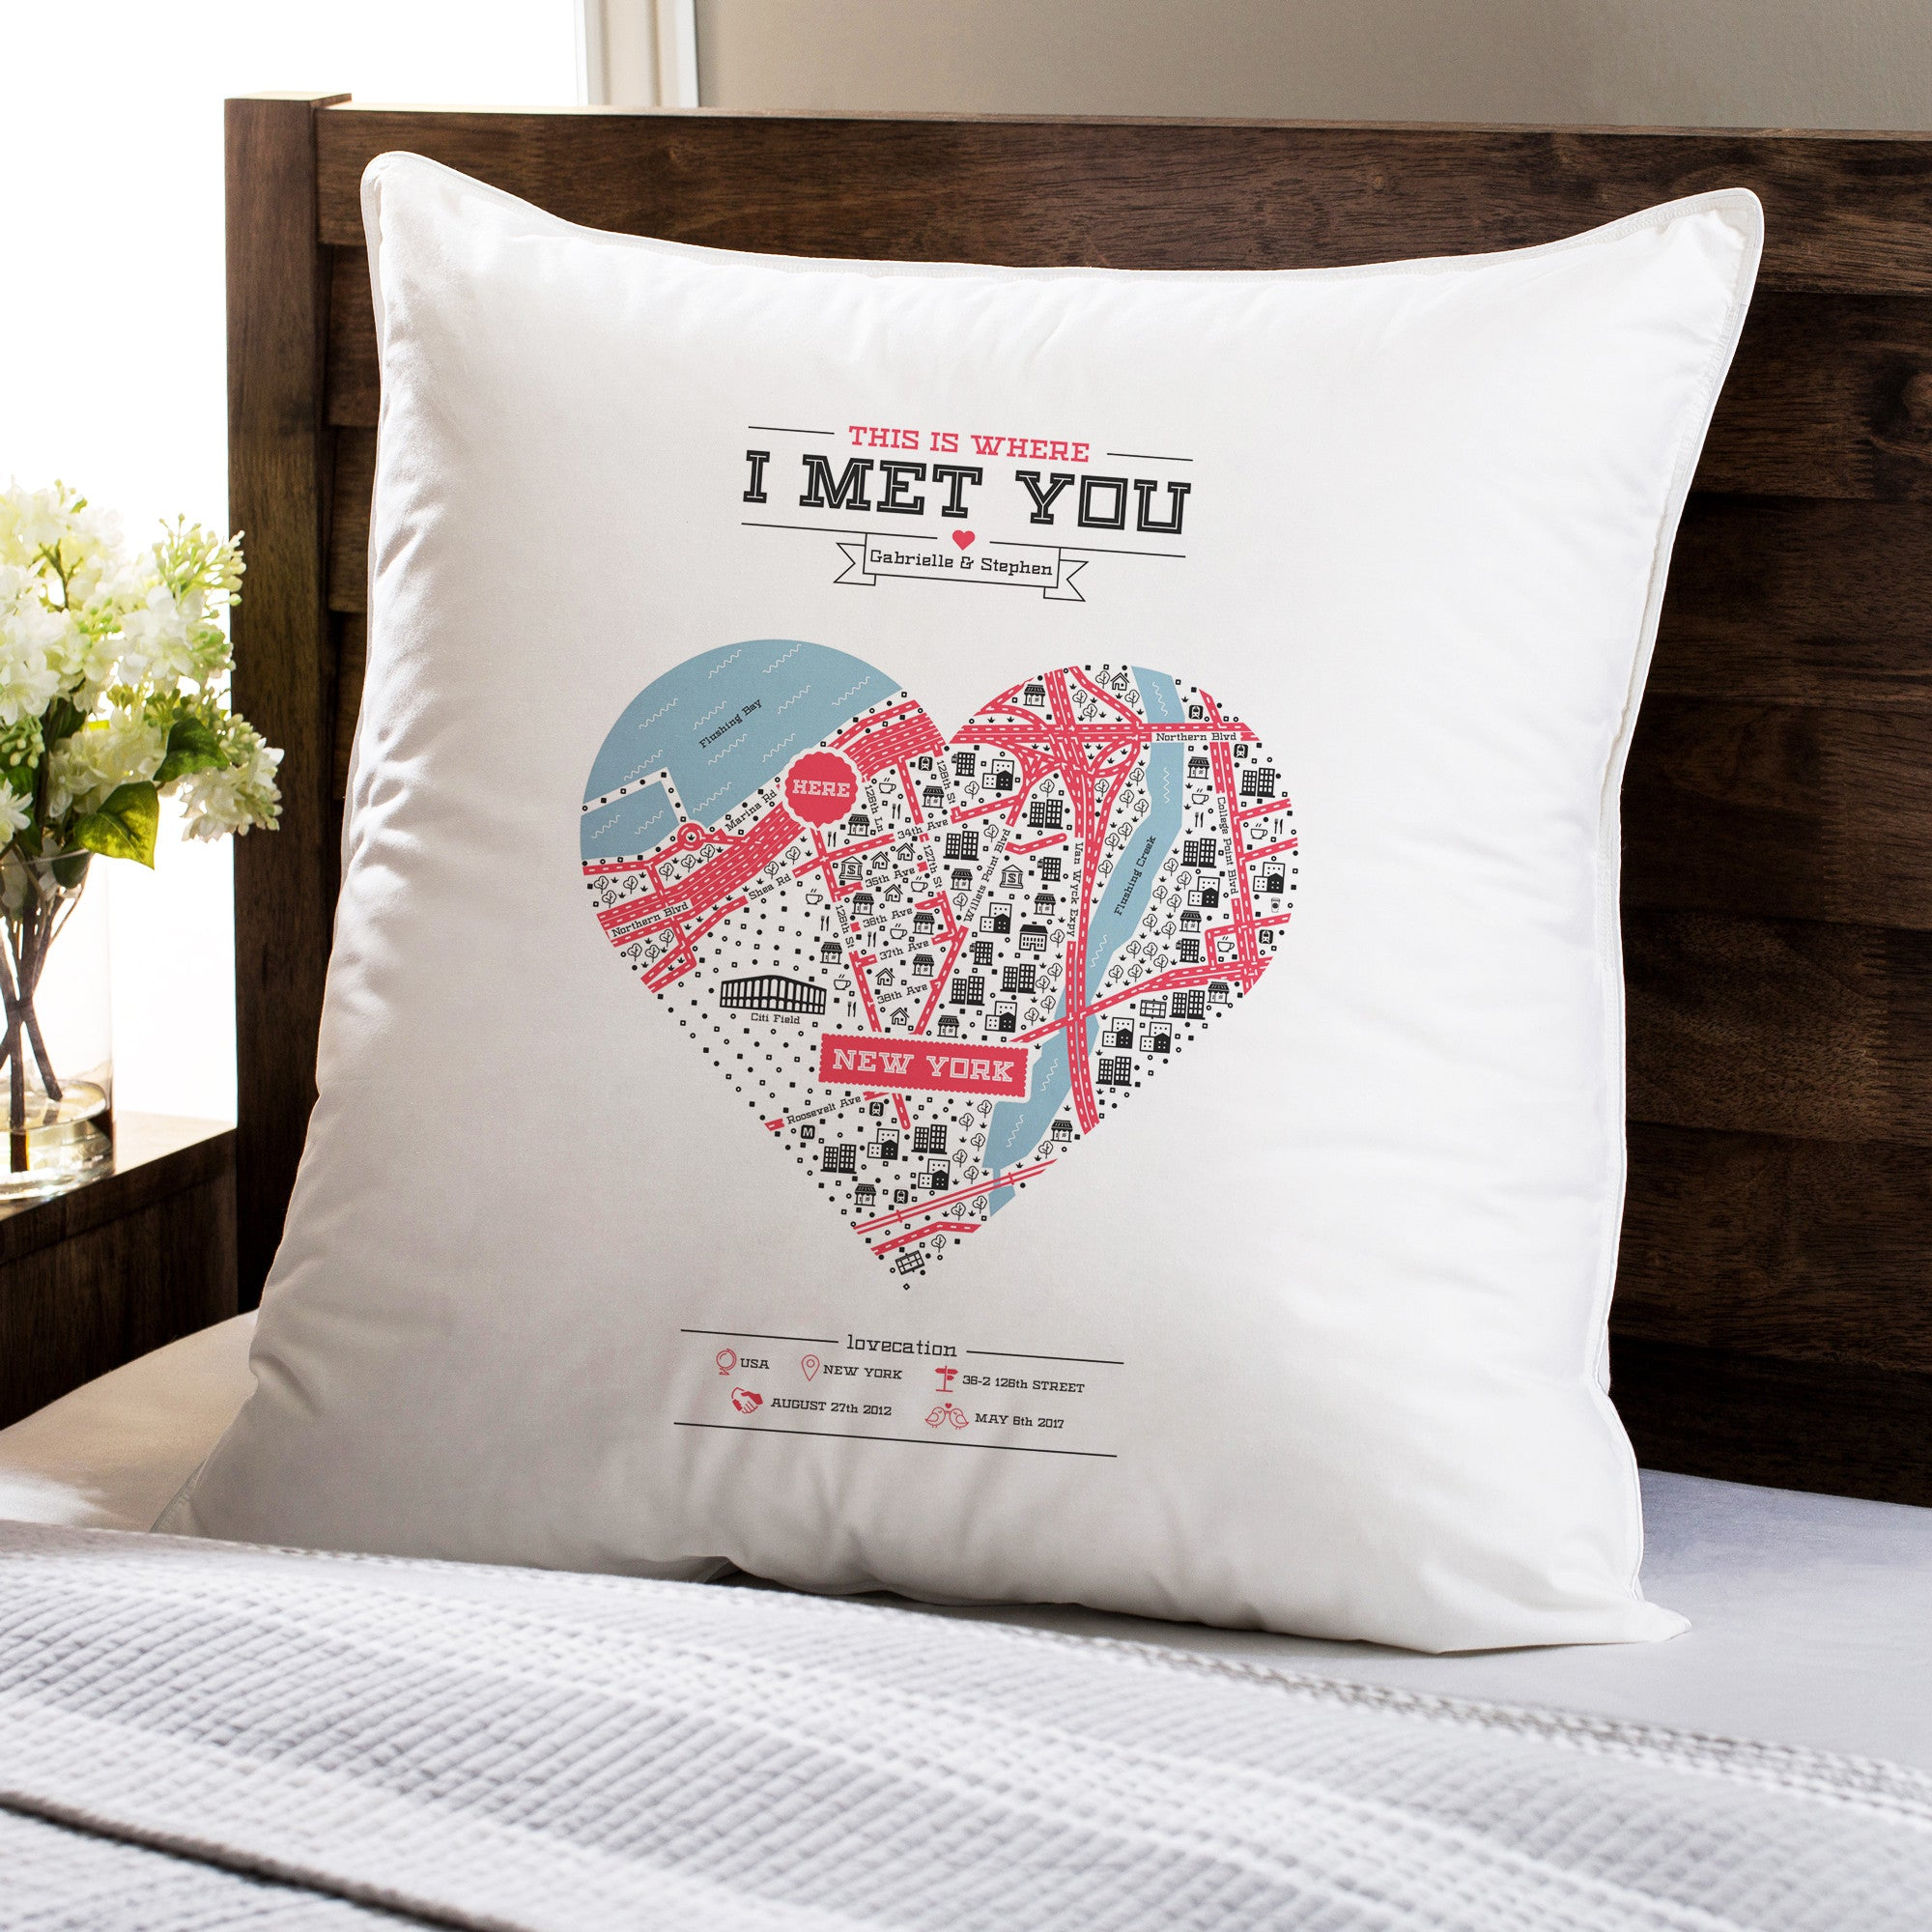 my box watch to watches pillows collection for pillow r make comments decided personalized